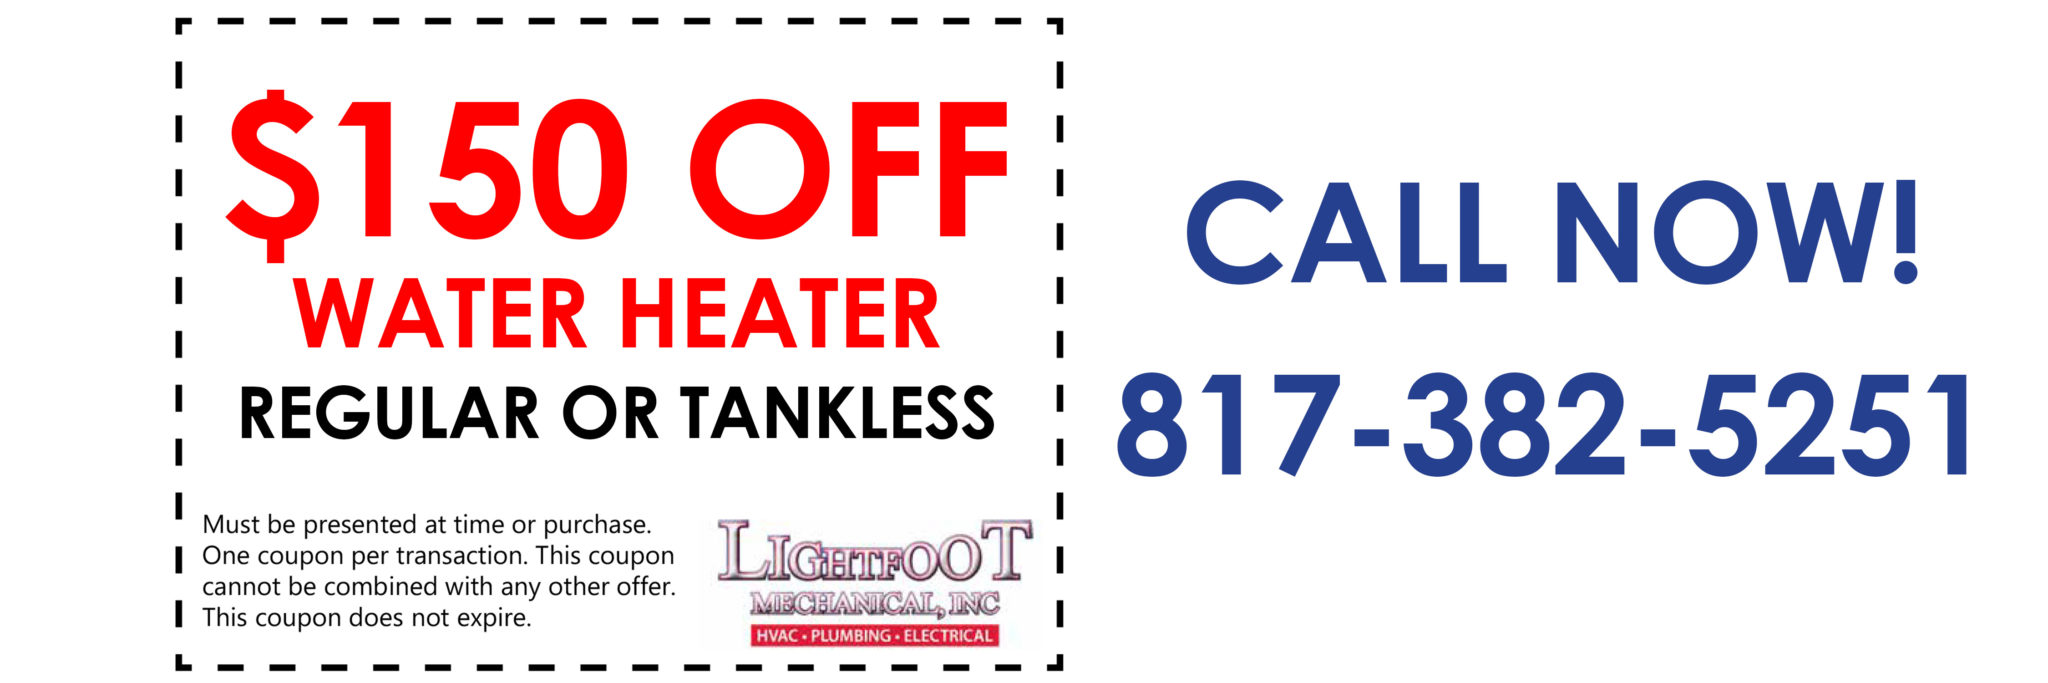 water heaters extended coupon